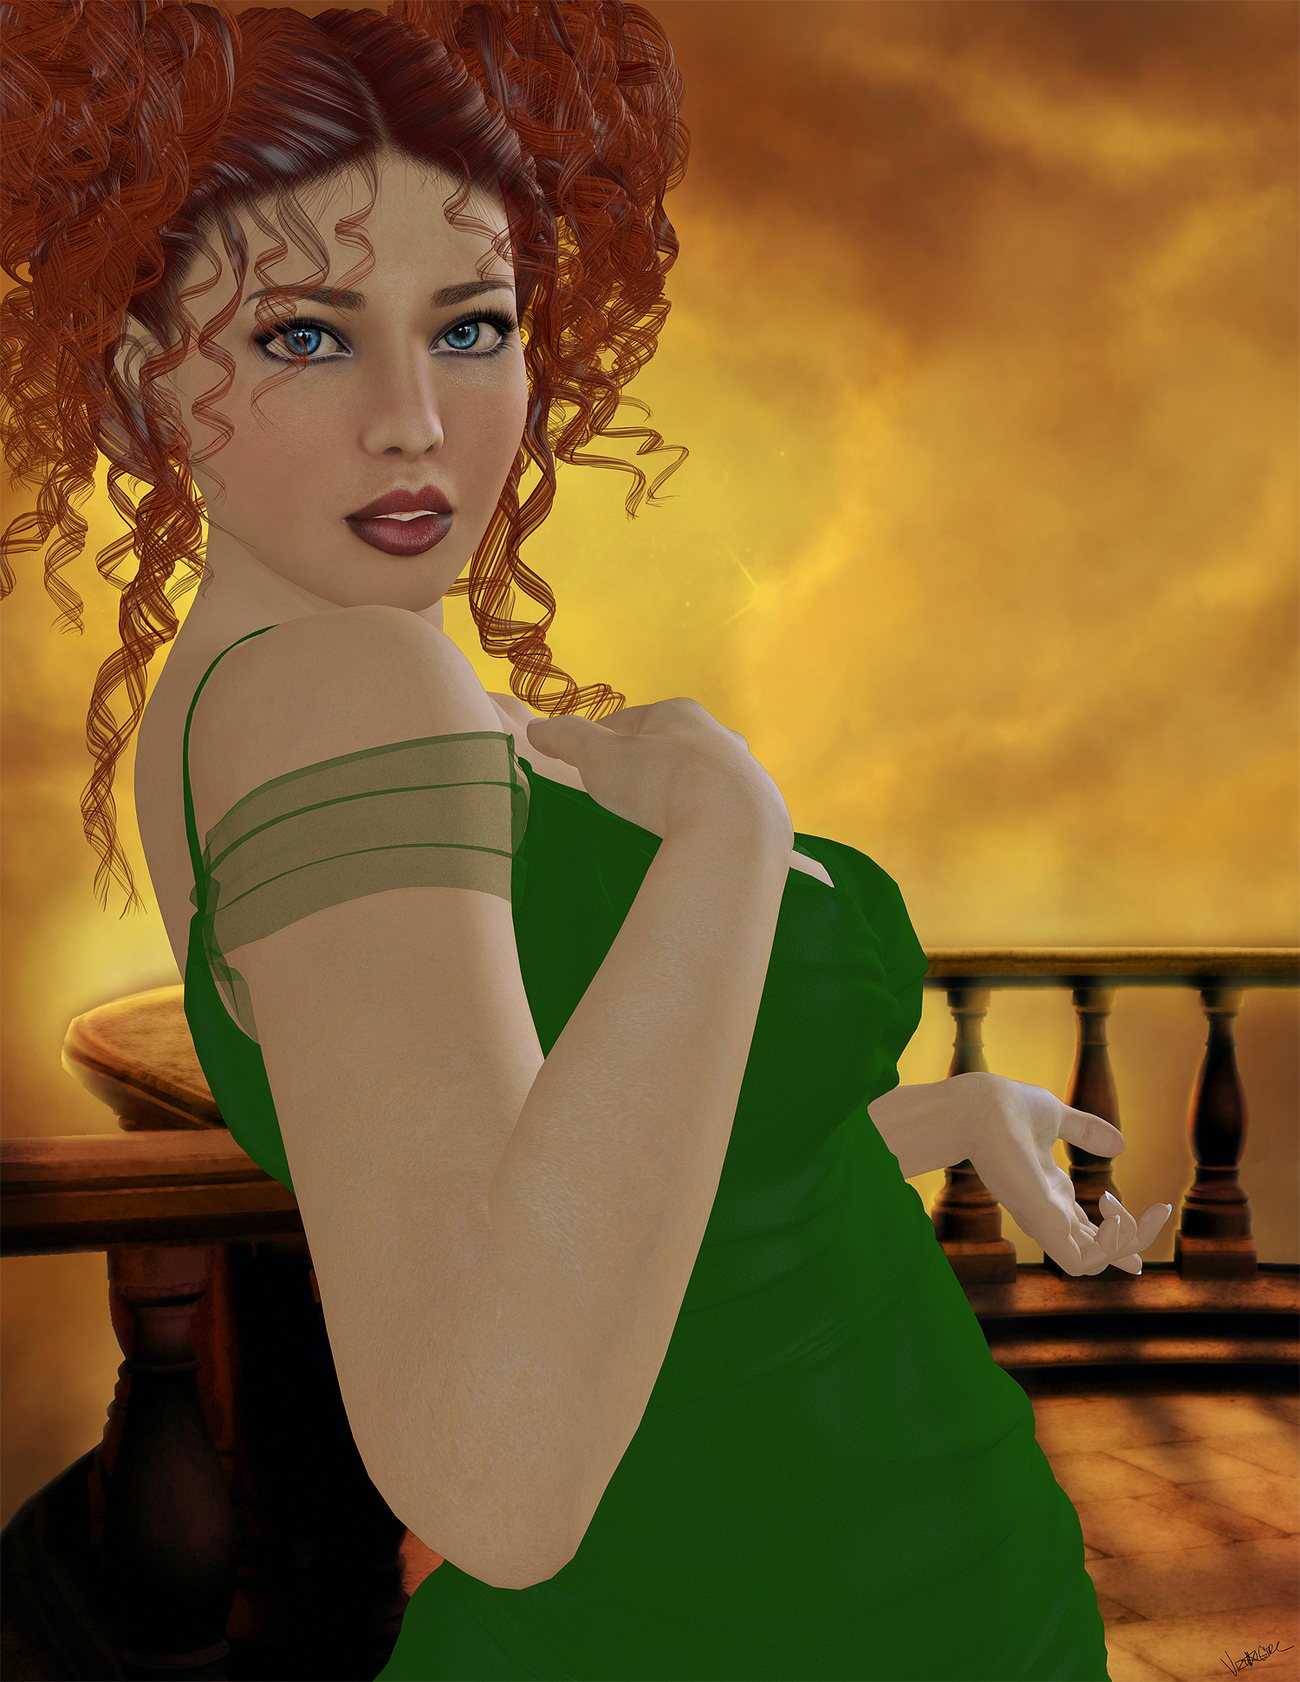 Girl In The Green Dress by visualgirl